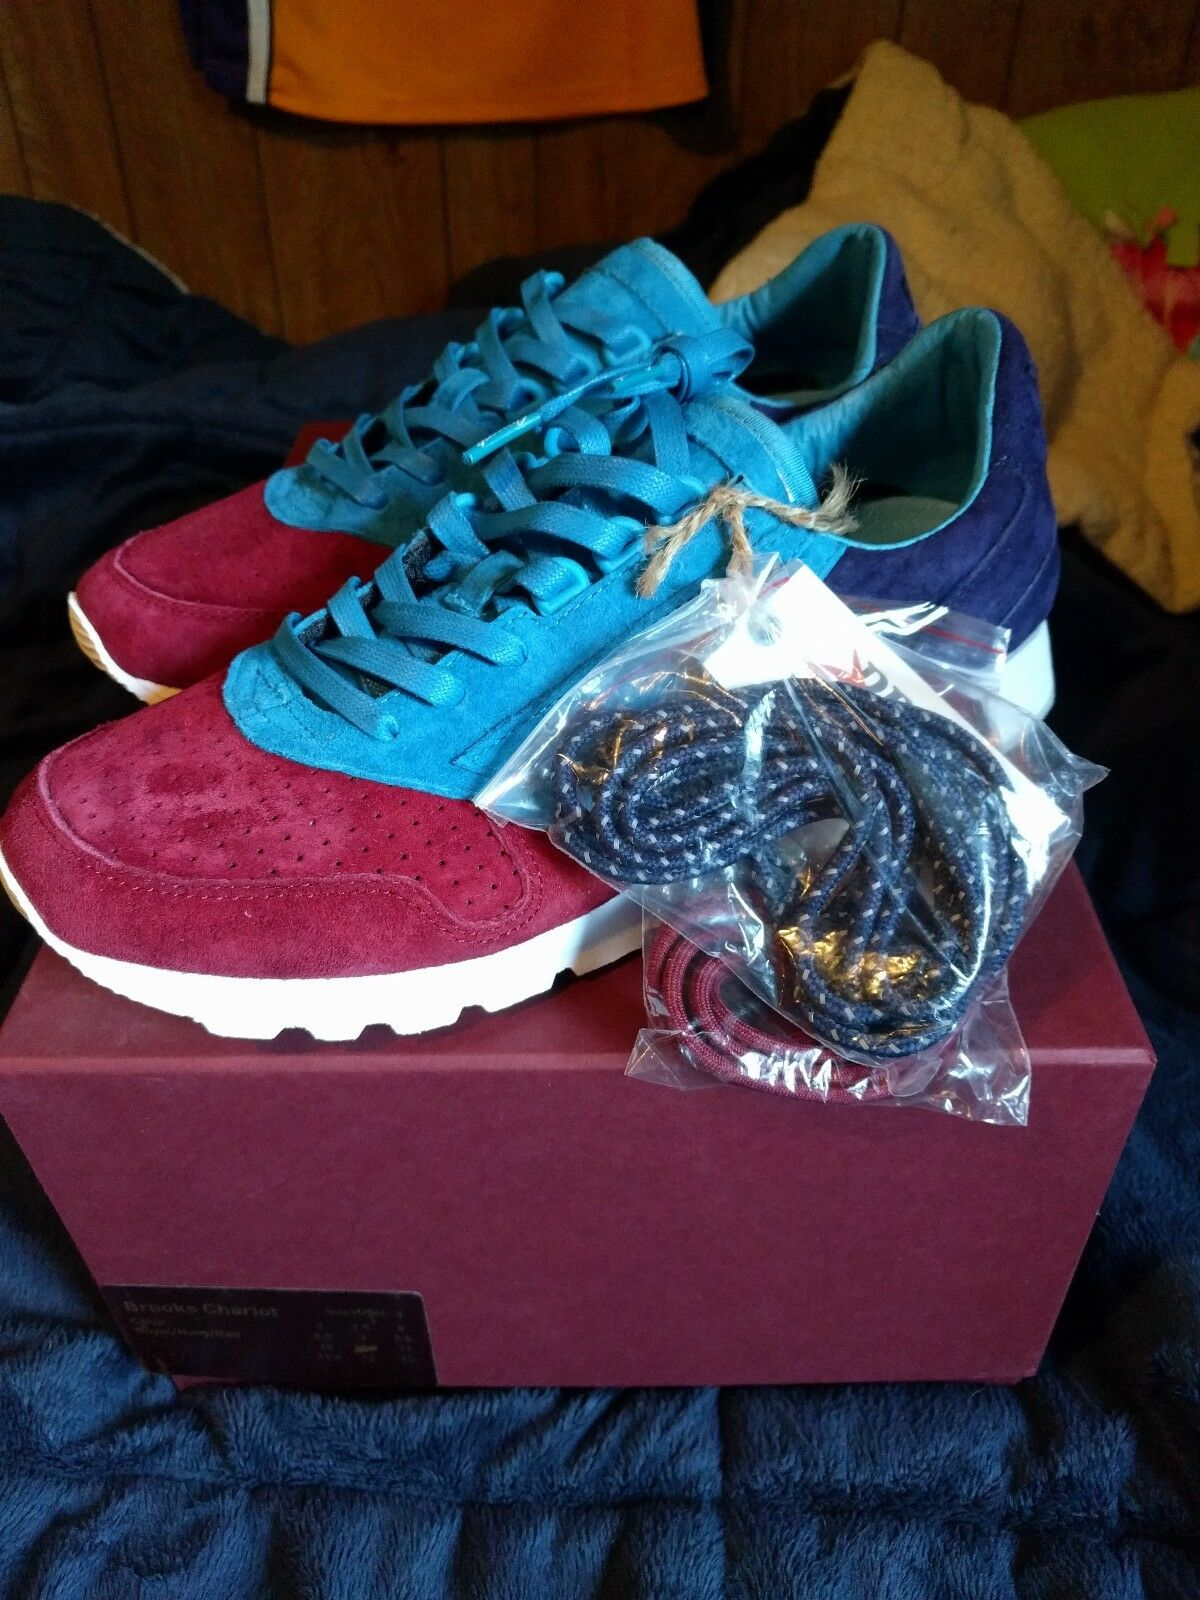 Concepts Hyannis Brooks Merlot Chariot Ronnie Fieg Kith Kith Kith Size 10 942204